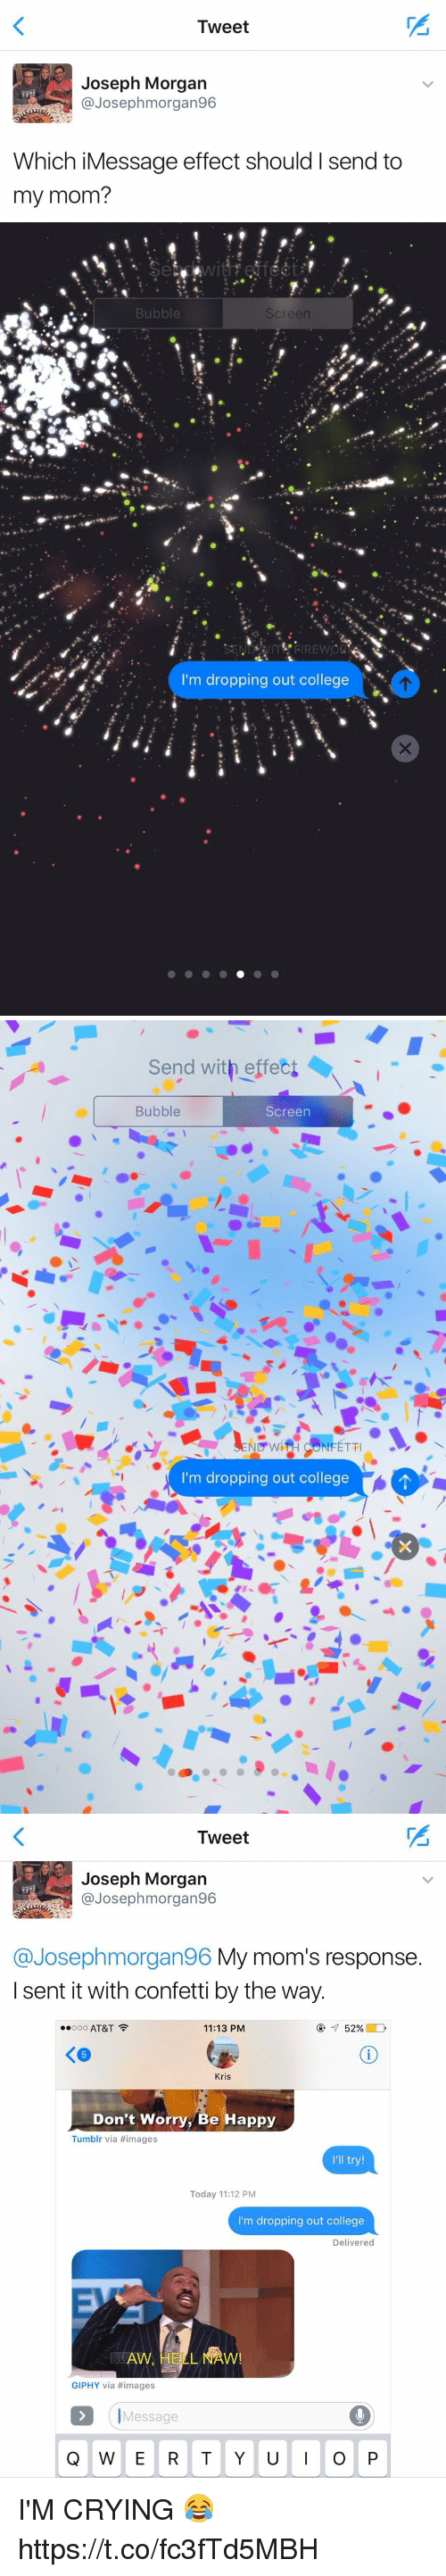 """Ÿ """": Tweet  Joseph Morgan  @Joseph morgan96  Which iMessage effect should I send to  my mom?   Bubble  Screen  m dropping out college   Send with effect  Bubble  Screen  ND WH NFETTI  I'm dropping out college   Tweet  Joseph Morgan  Josep hmorgan96  @Joseph morgan96 My mom's response  I sent it with confetti by the way.  Ooo AT&T  52%  11:13 PM  Kris  Don't Worry, Be Happy  Tumblr via #images  I'll try!  Today 11:12 PM  I'm dropping out college  Delivered  GIPHY via images  Message  Q W E R T Y U  I O P I'M CRYING 😂 https://t.co/fc3fTd5MBH"""